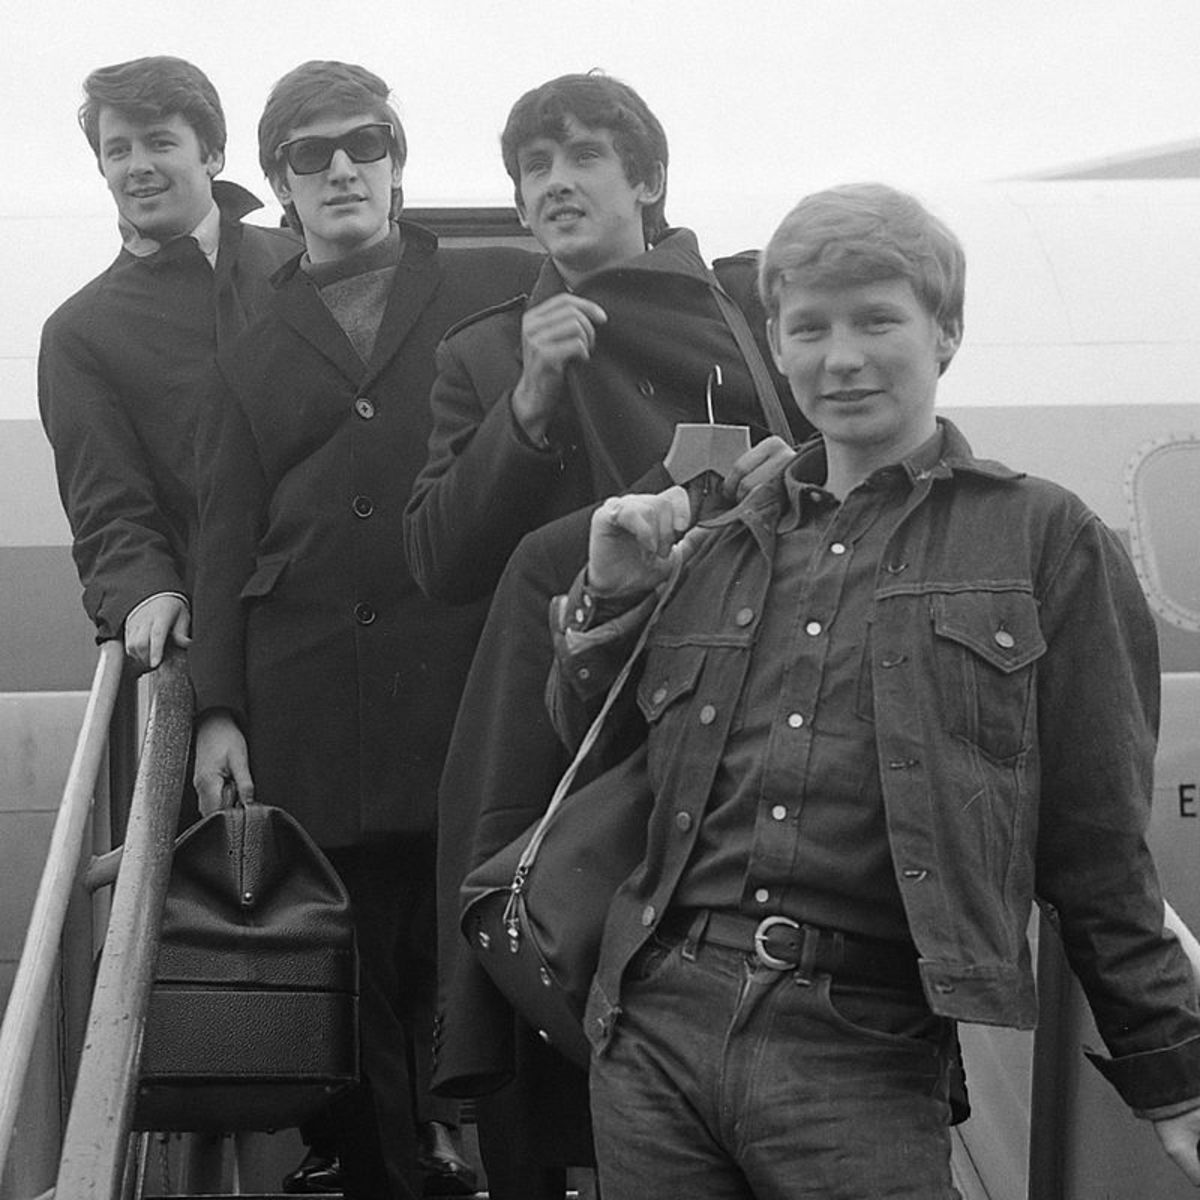 Ten British Invasion Bands (not including The Beatles or The Rolling Stones)